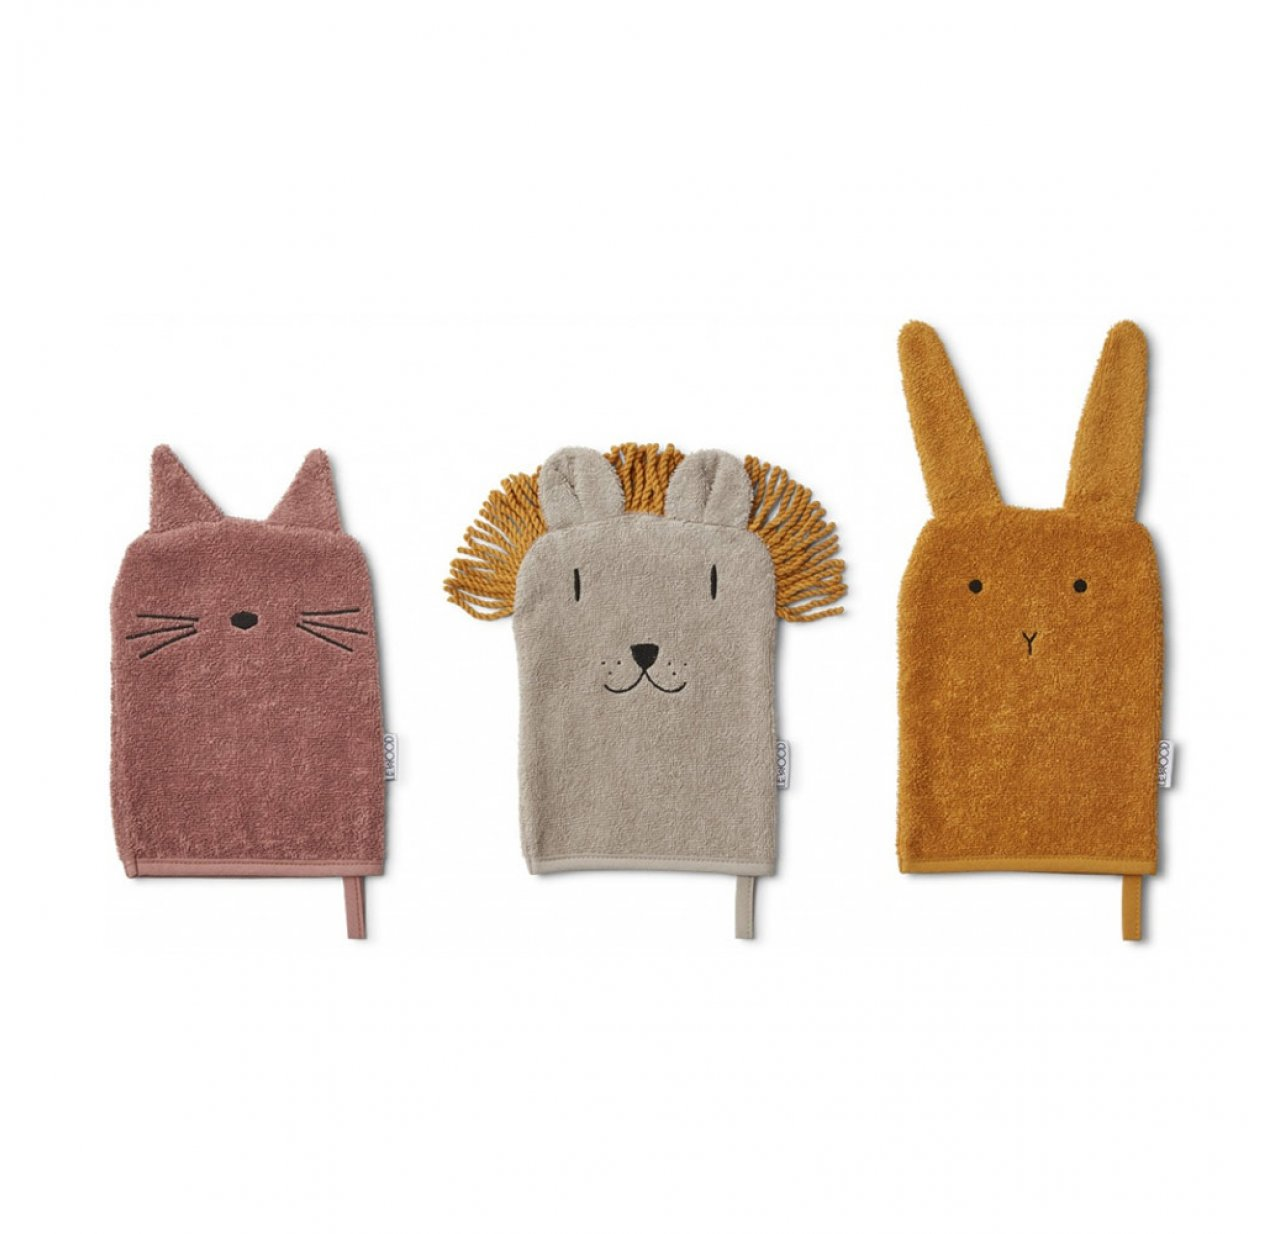 Set de 3 gants Chat, Lapin et Lion Sylvester